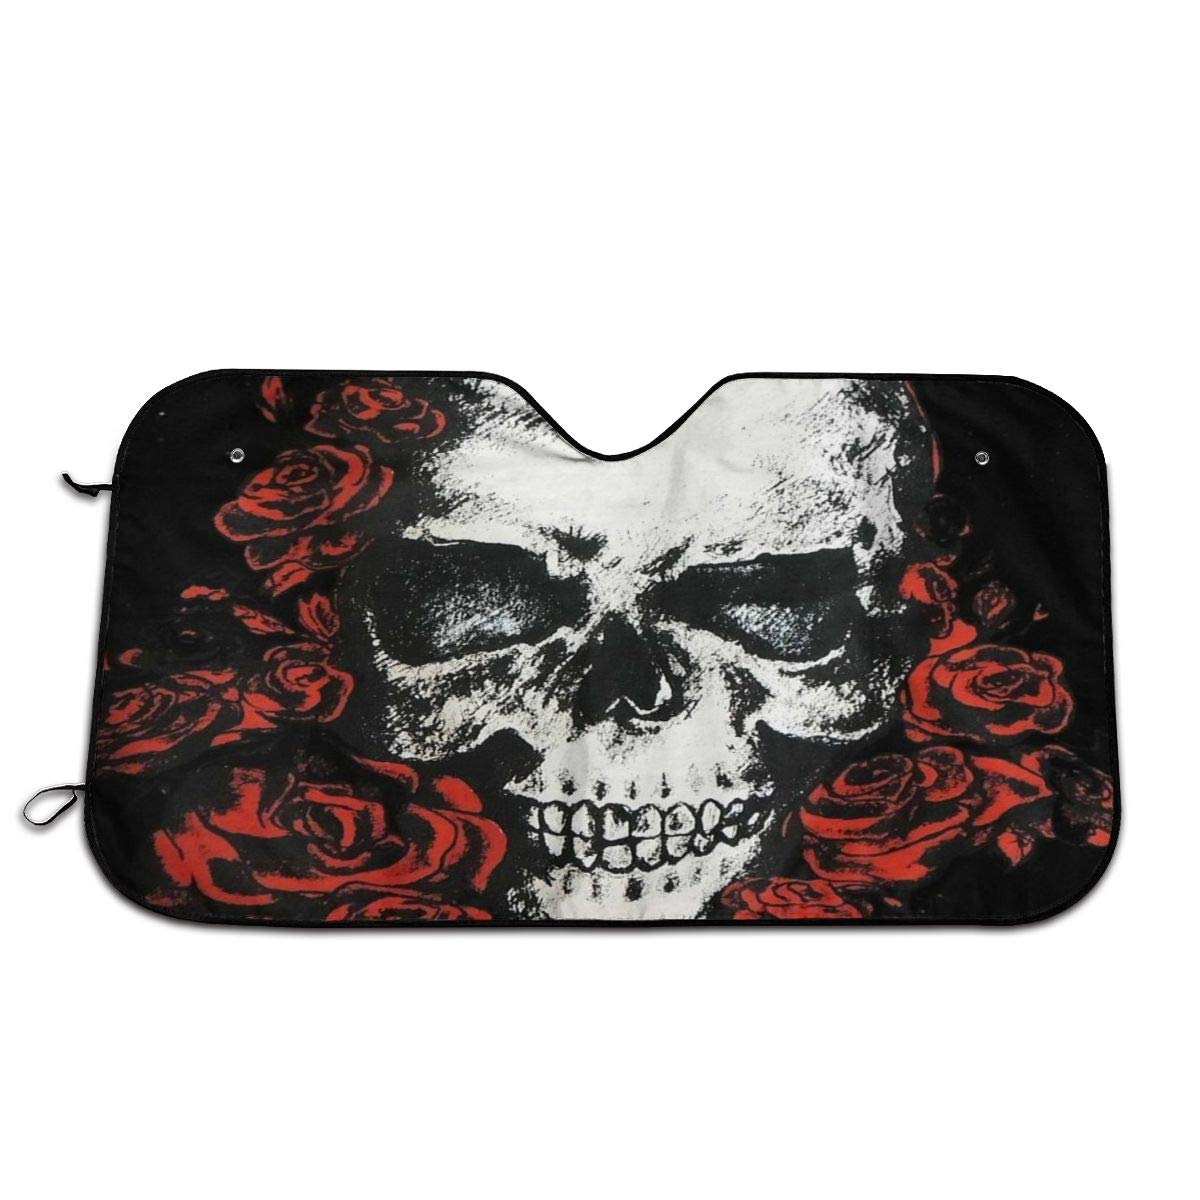 Hot Gothic Floral Skull Car Sun Shade for Car SUV Trucks Minivan Automotive Sunshade Keeps Your Vehicle Cool Heat Shield Shade(51'' x 27.5'') by Perfectly Customized